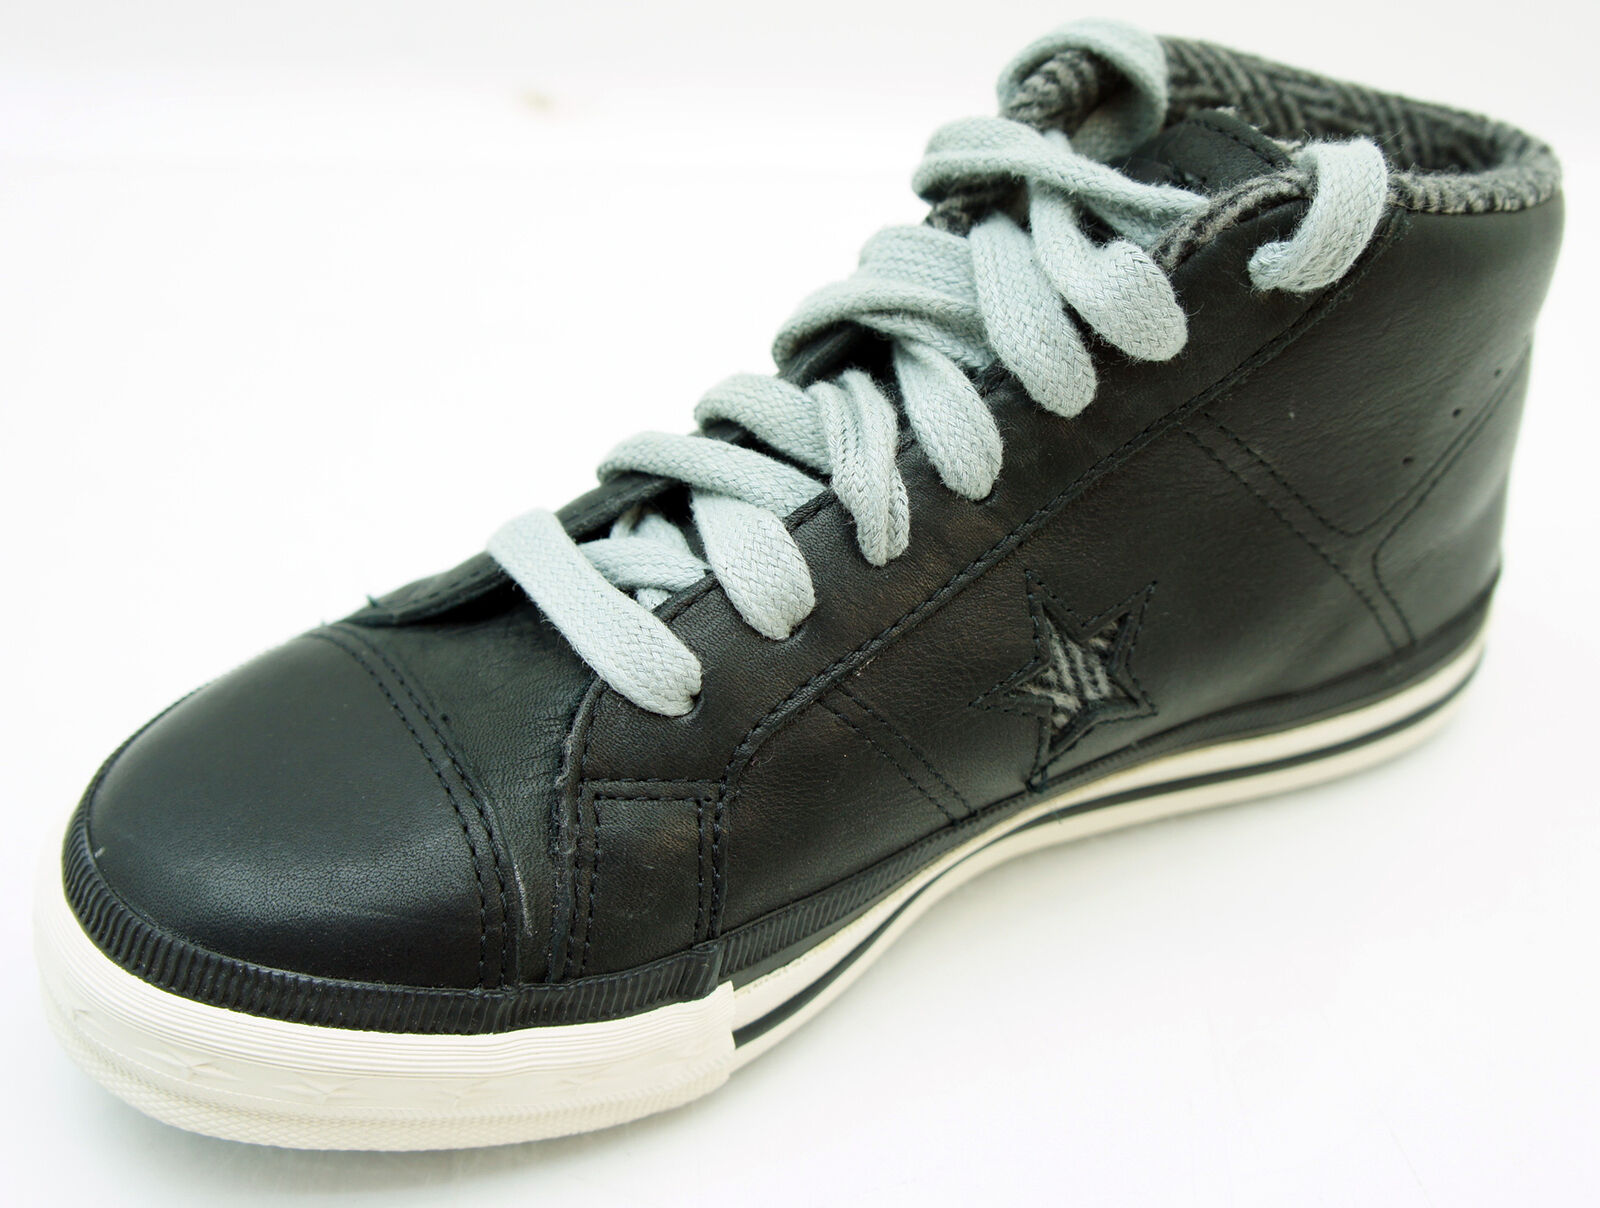 Converse One Star Mid chaussures Turnchaussures Cuir noir Eur 37,5 Uk 4,5 Us 5